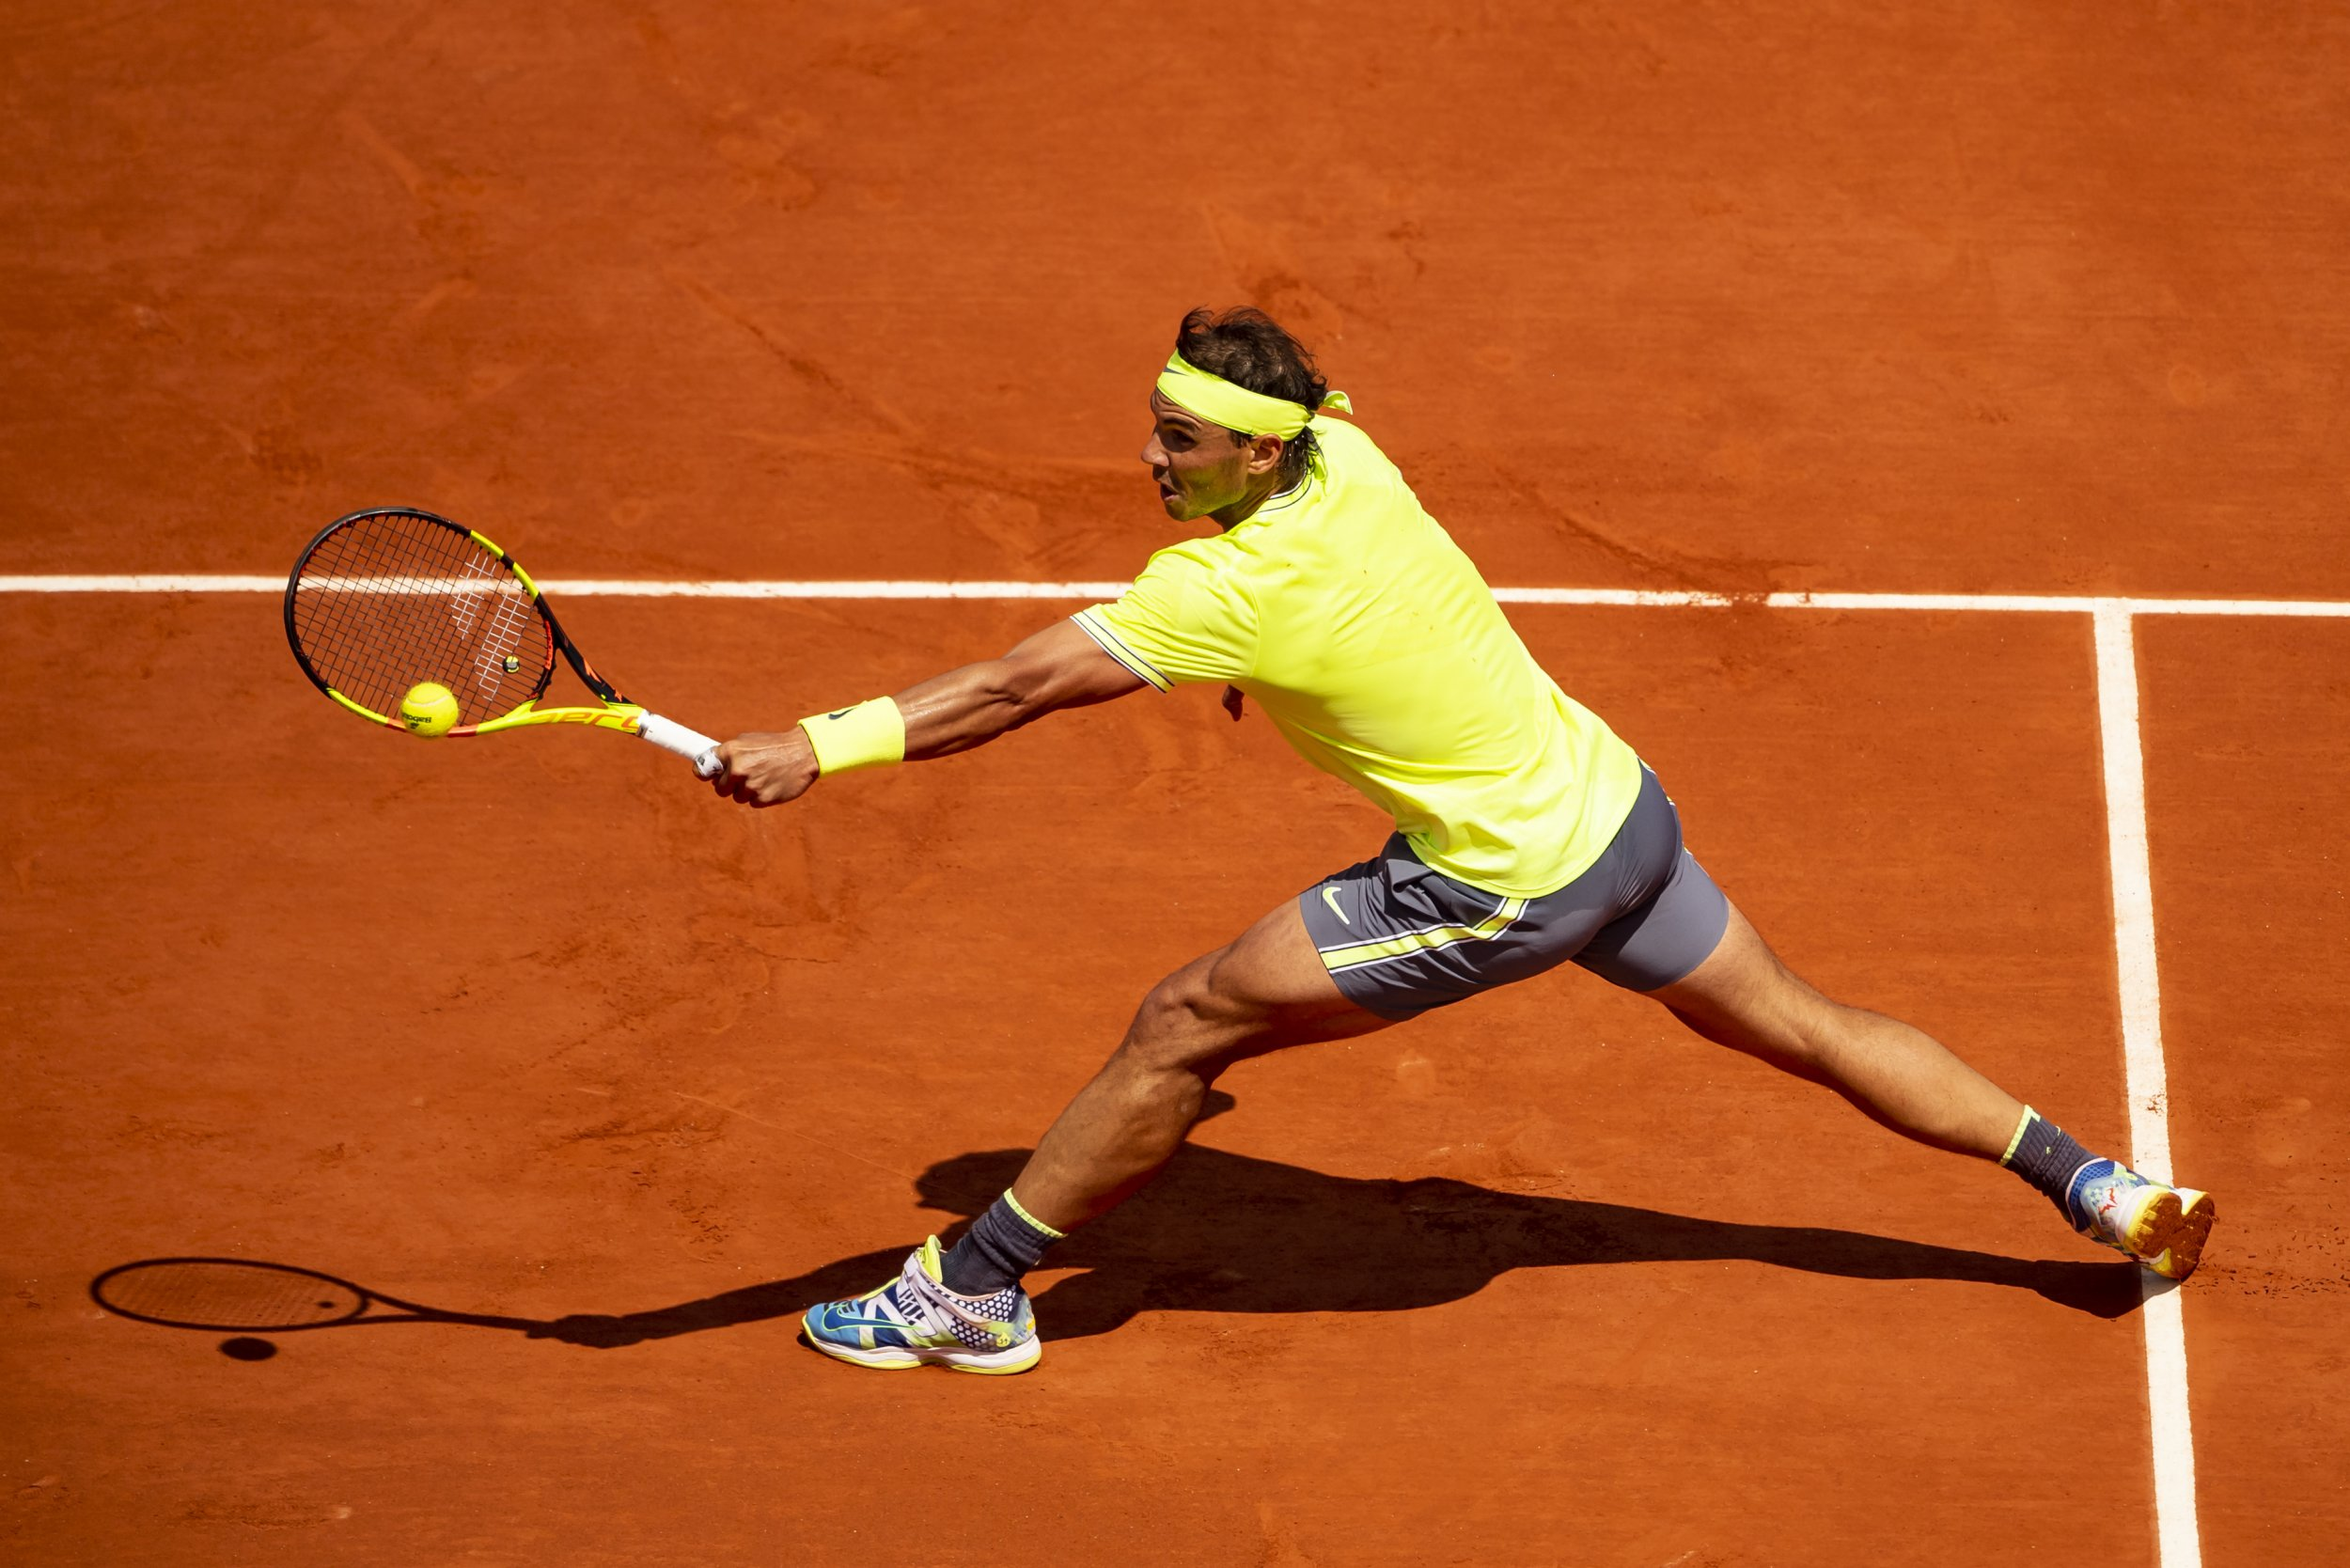 French Open Tennis 2019 How To Watch Rafael Nadal And Roger Federer Third Round Matches Tv Schedule Live Stream And Result Updates